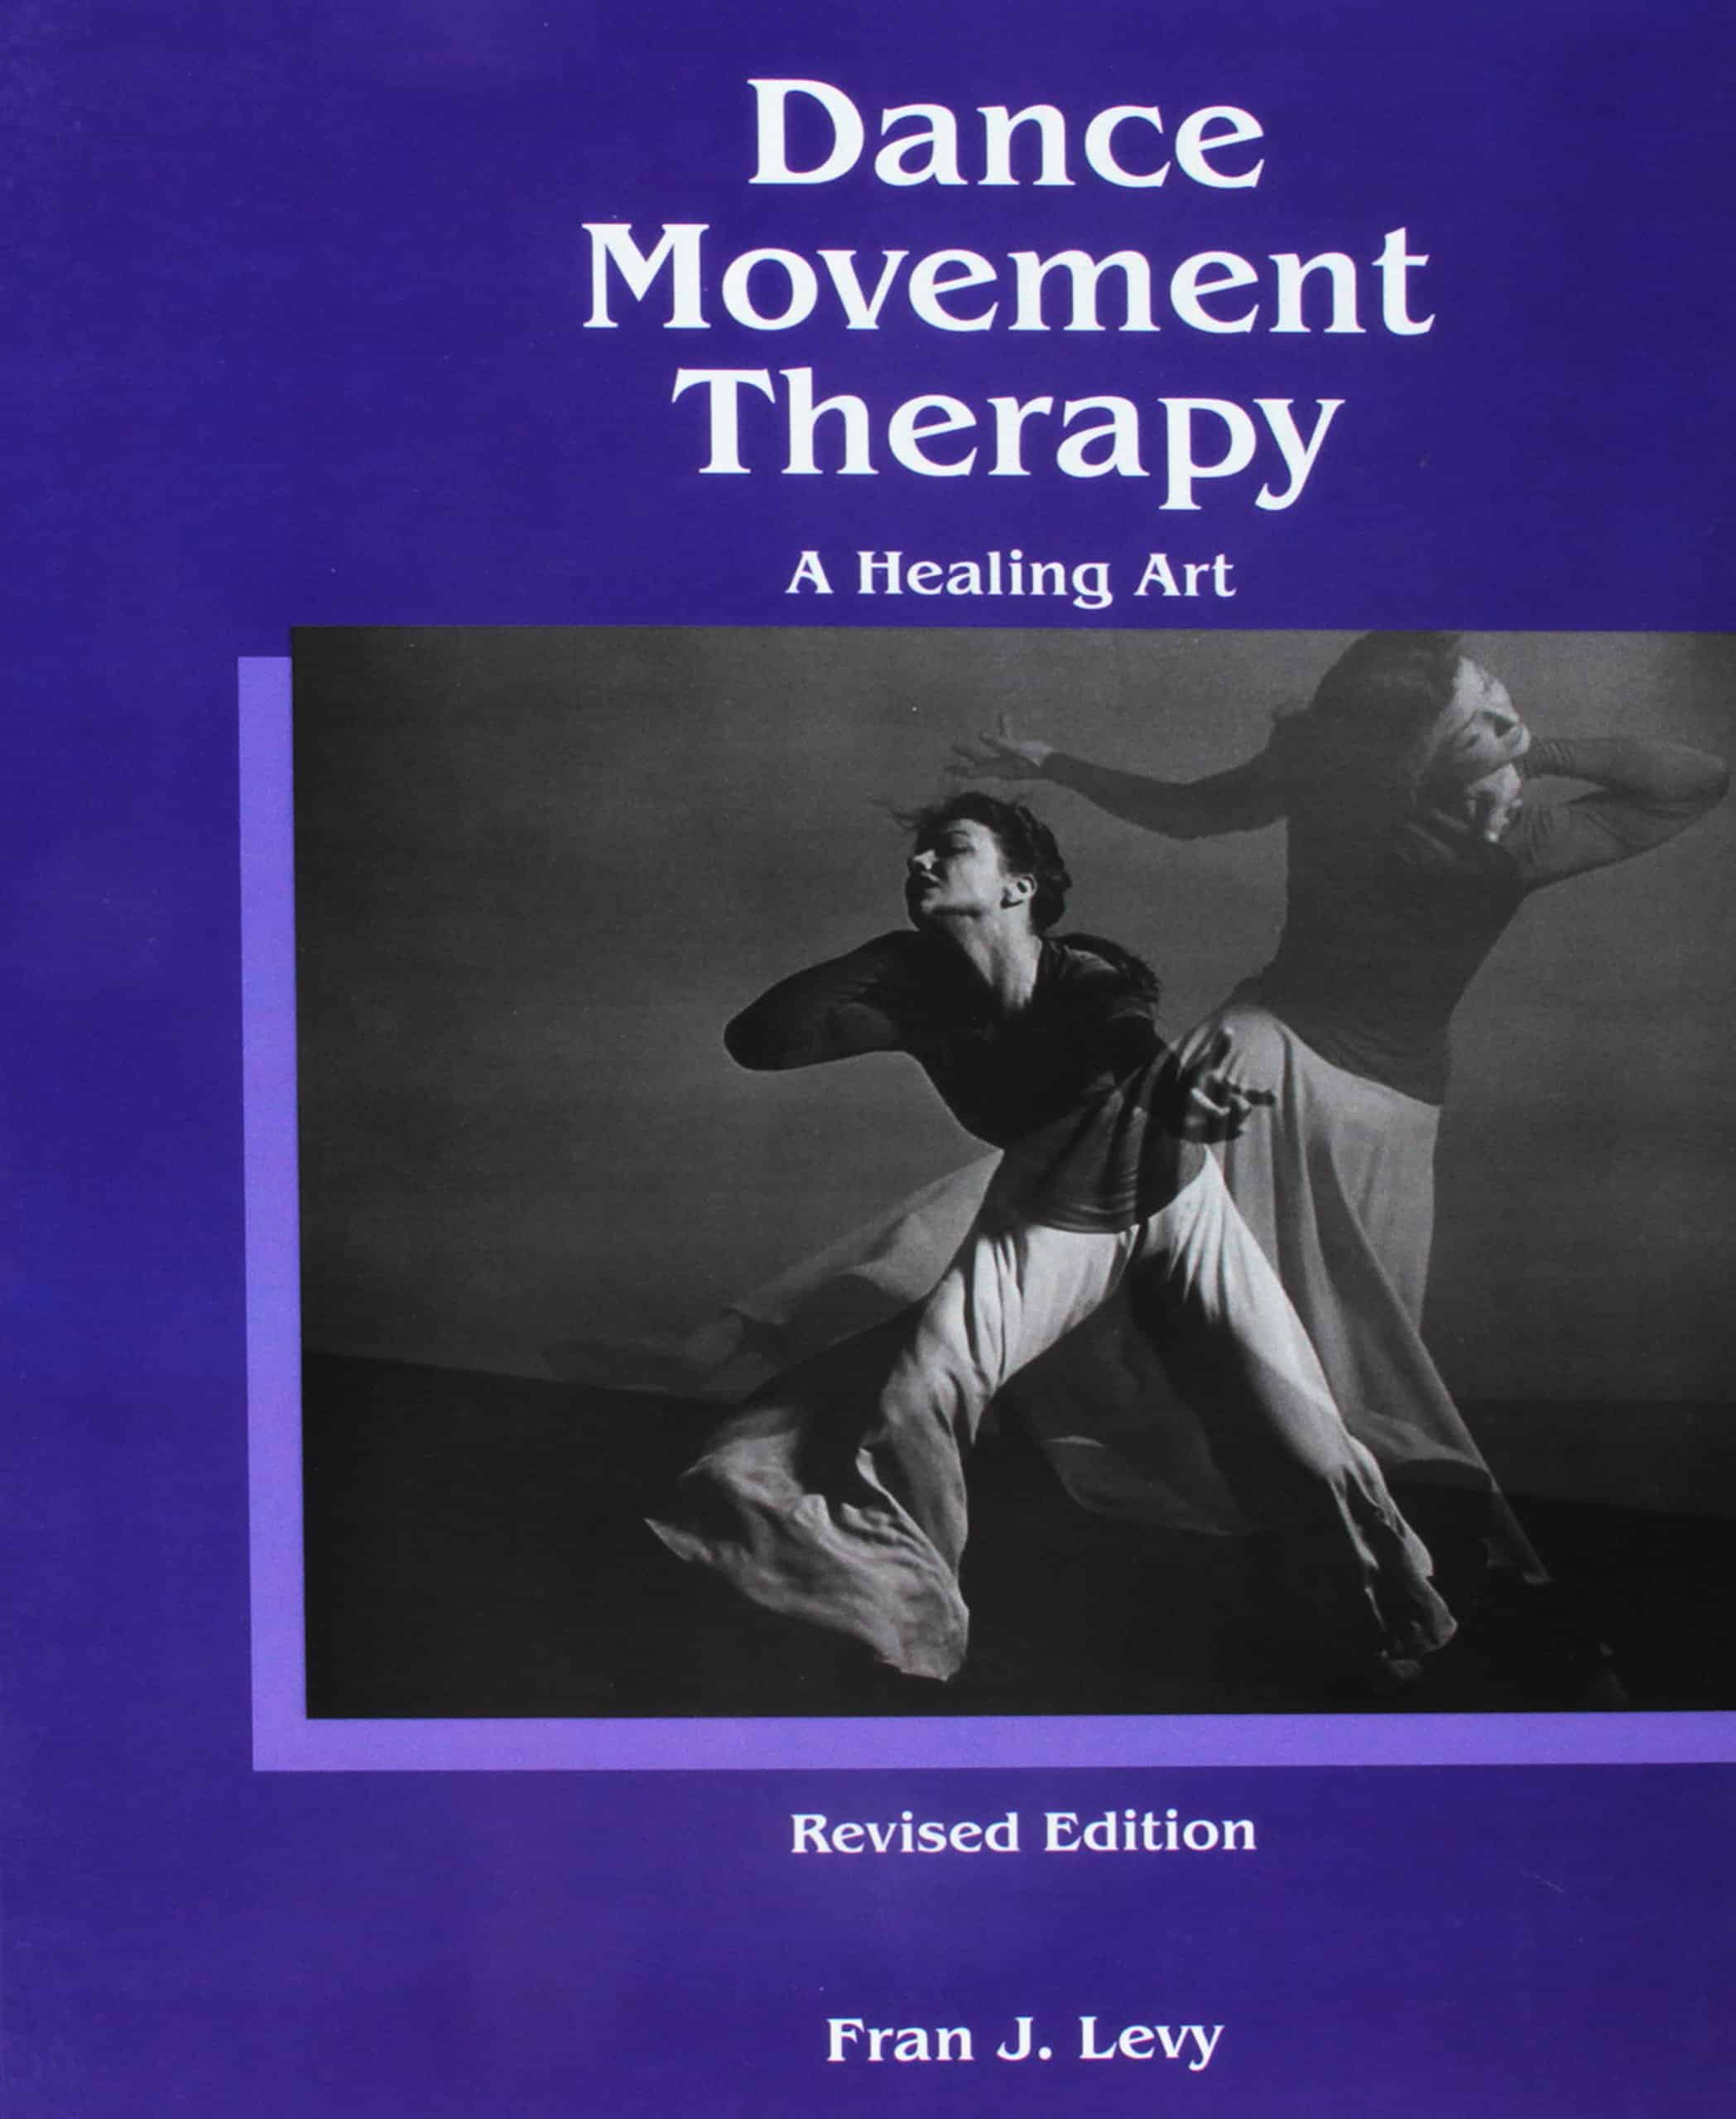 Dance/Movement Therapy: A Healing Art